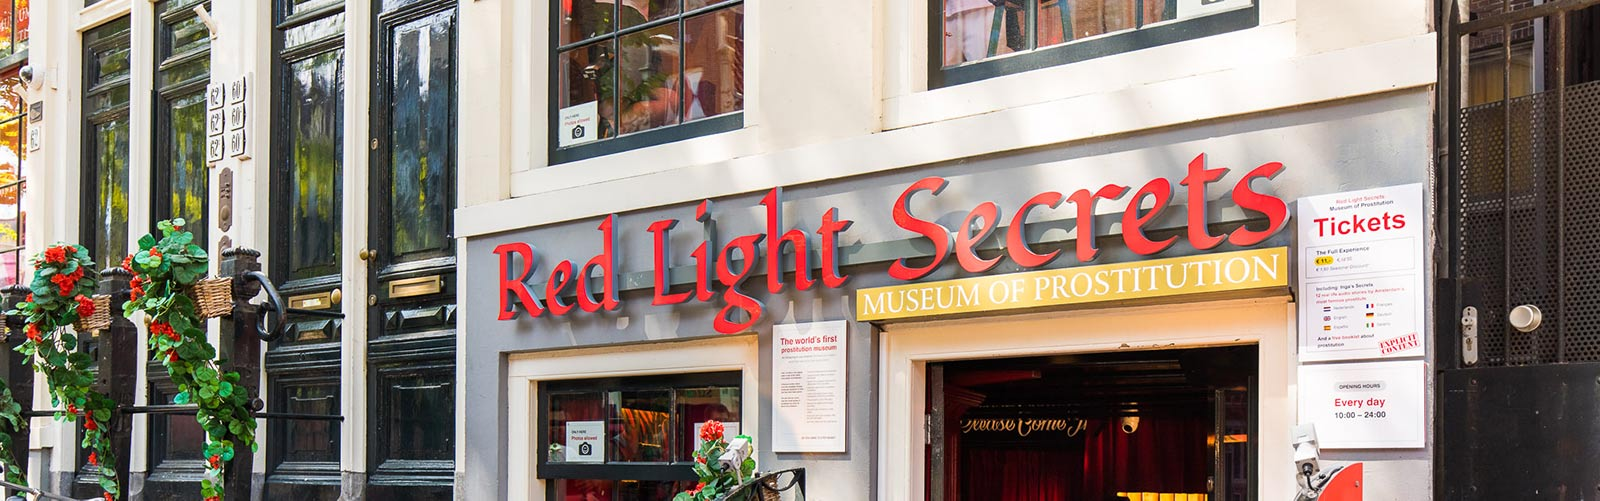 The entrance of Red Light Secrets, Museum of Prostitution in Amsterdam.